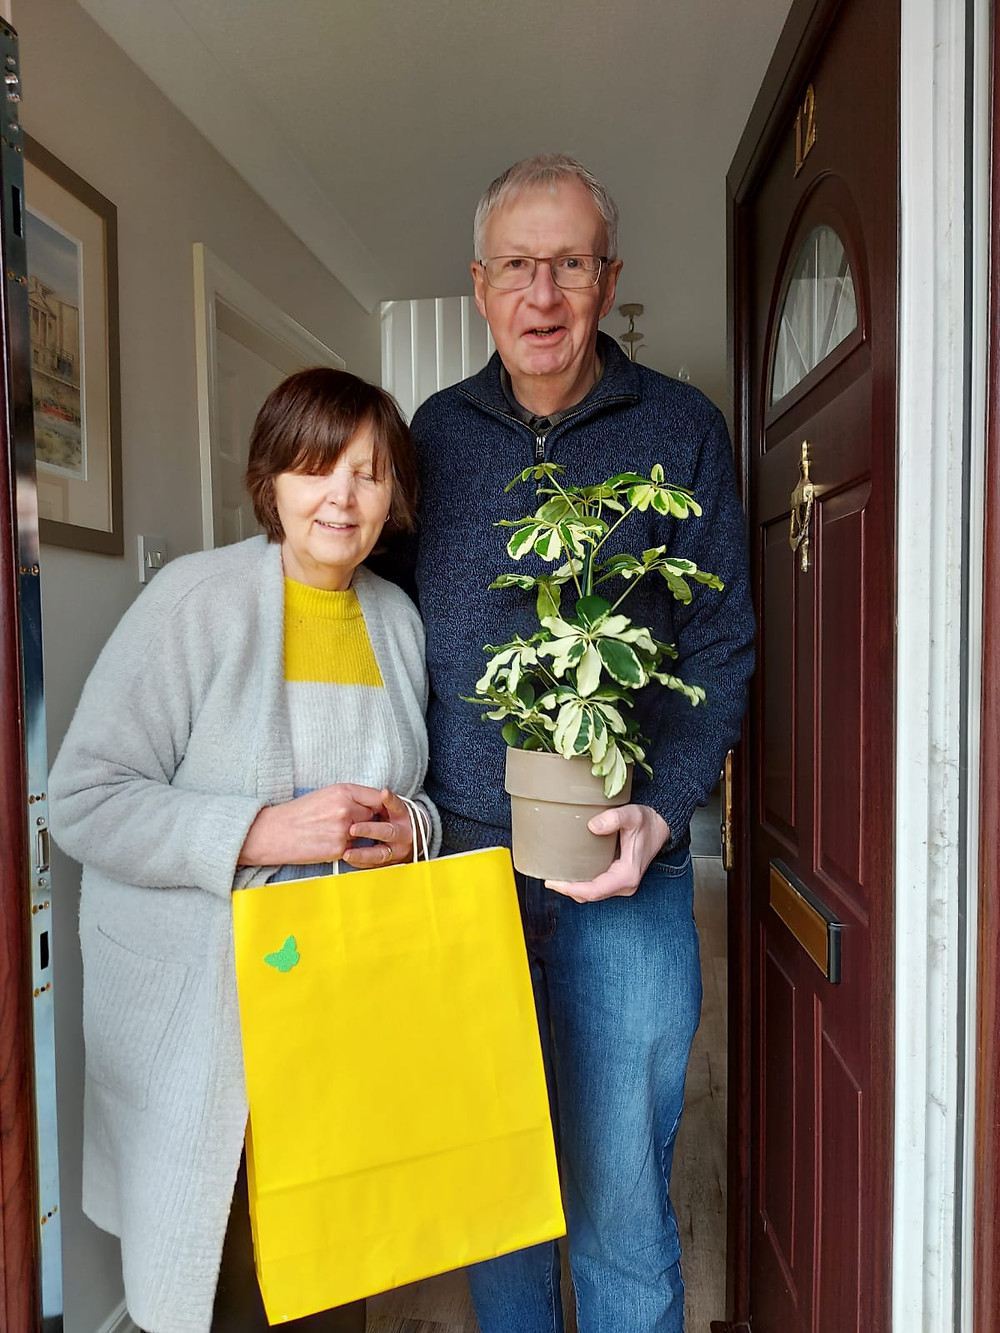 Sue is holding a yellow gift bag and Peter is holding a plant